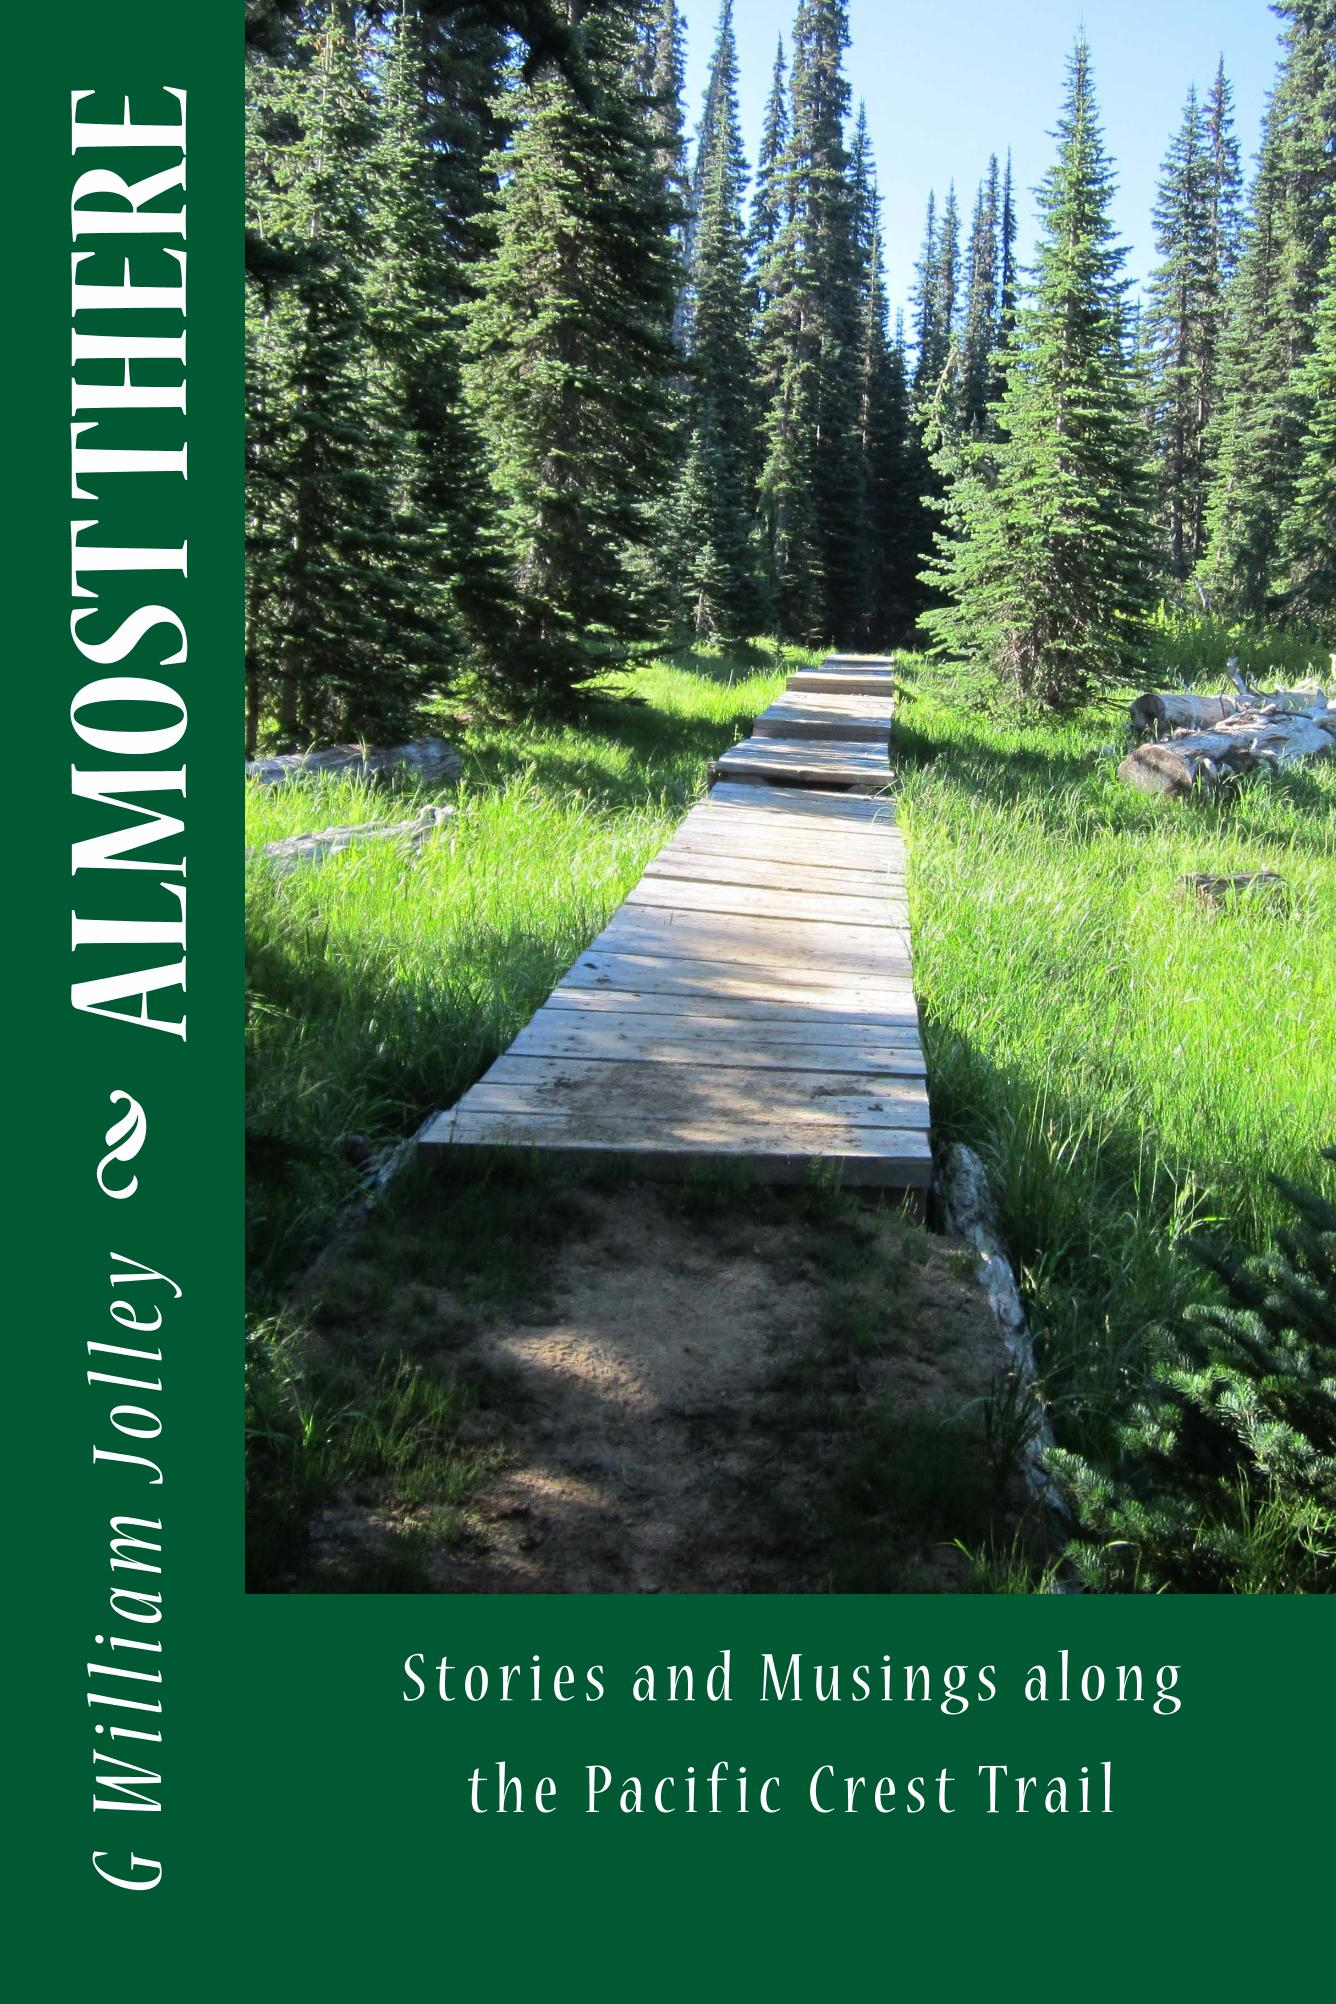 Almost_There_Cover_for_Kindle - Copy